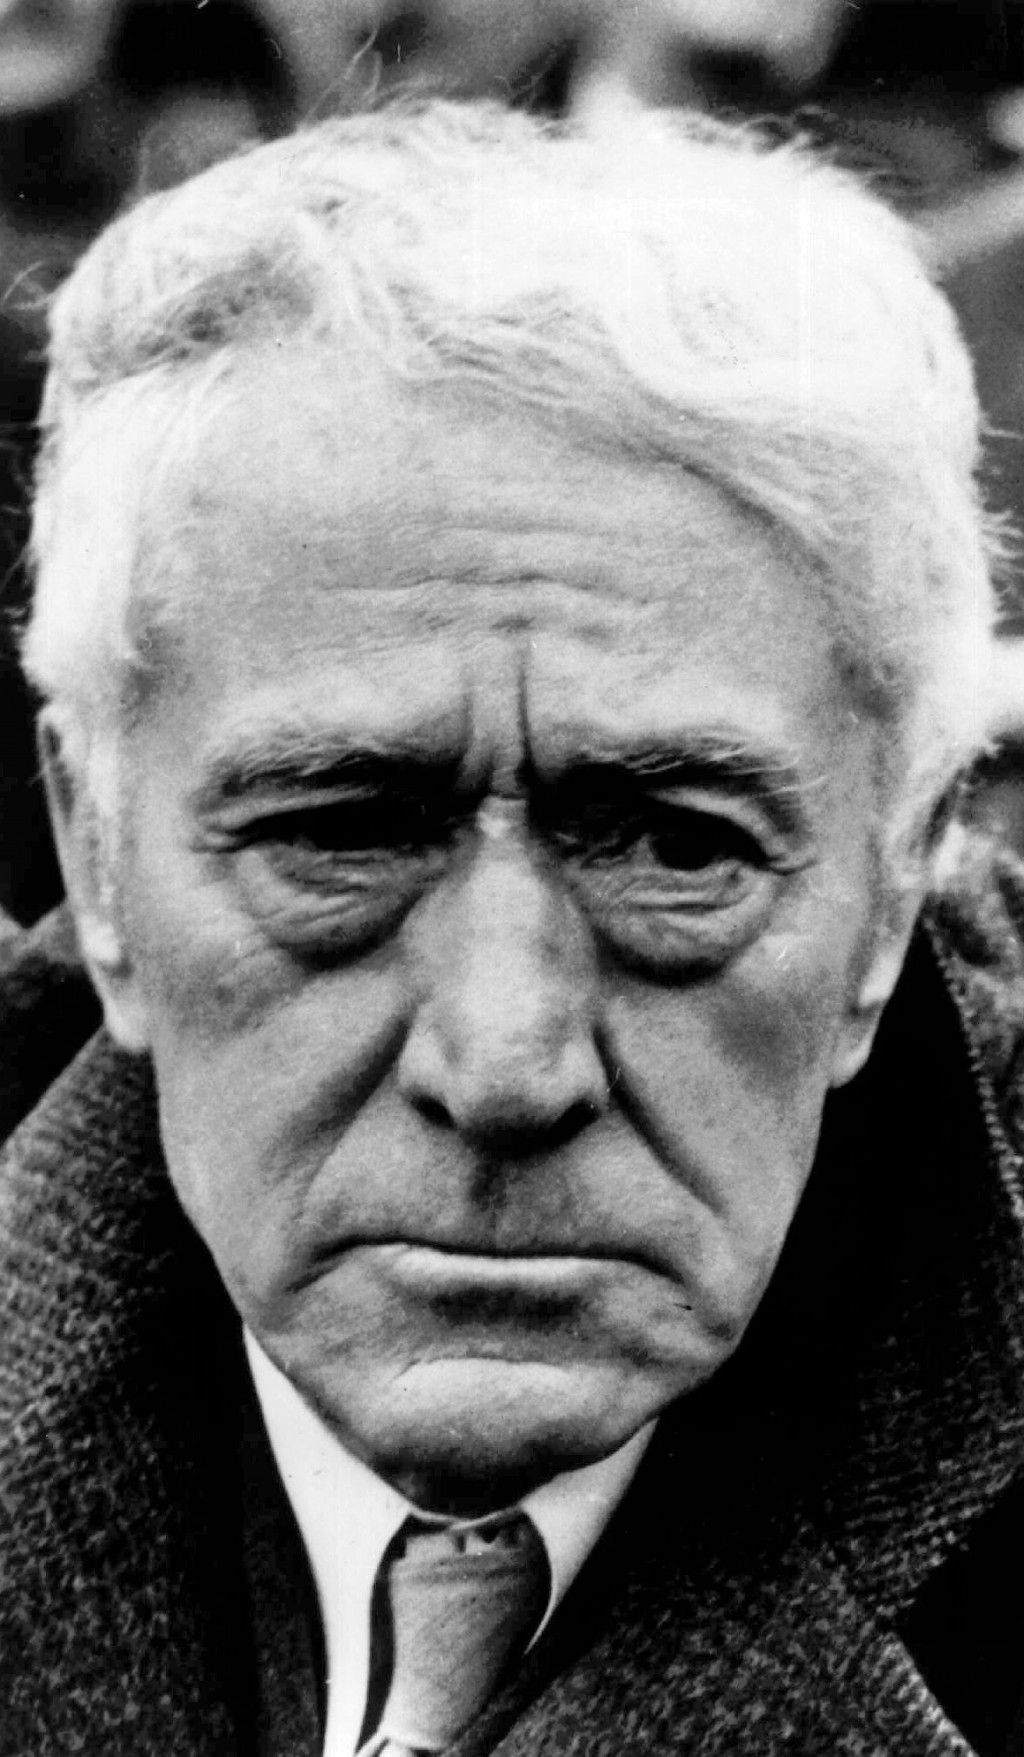 """FILE - In this 1938 file photo, Kenesaw Mountain Landis, baseball's first commissioner, is shown at age 78. The legacy of Landis is """"always a complica..."""